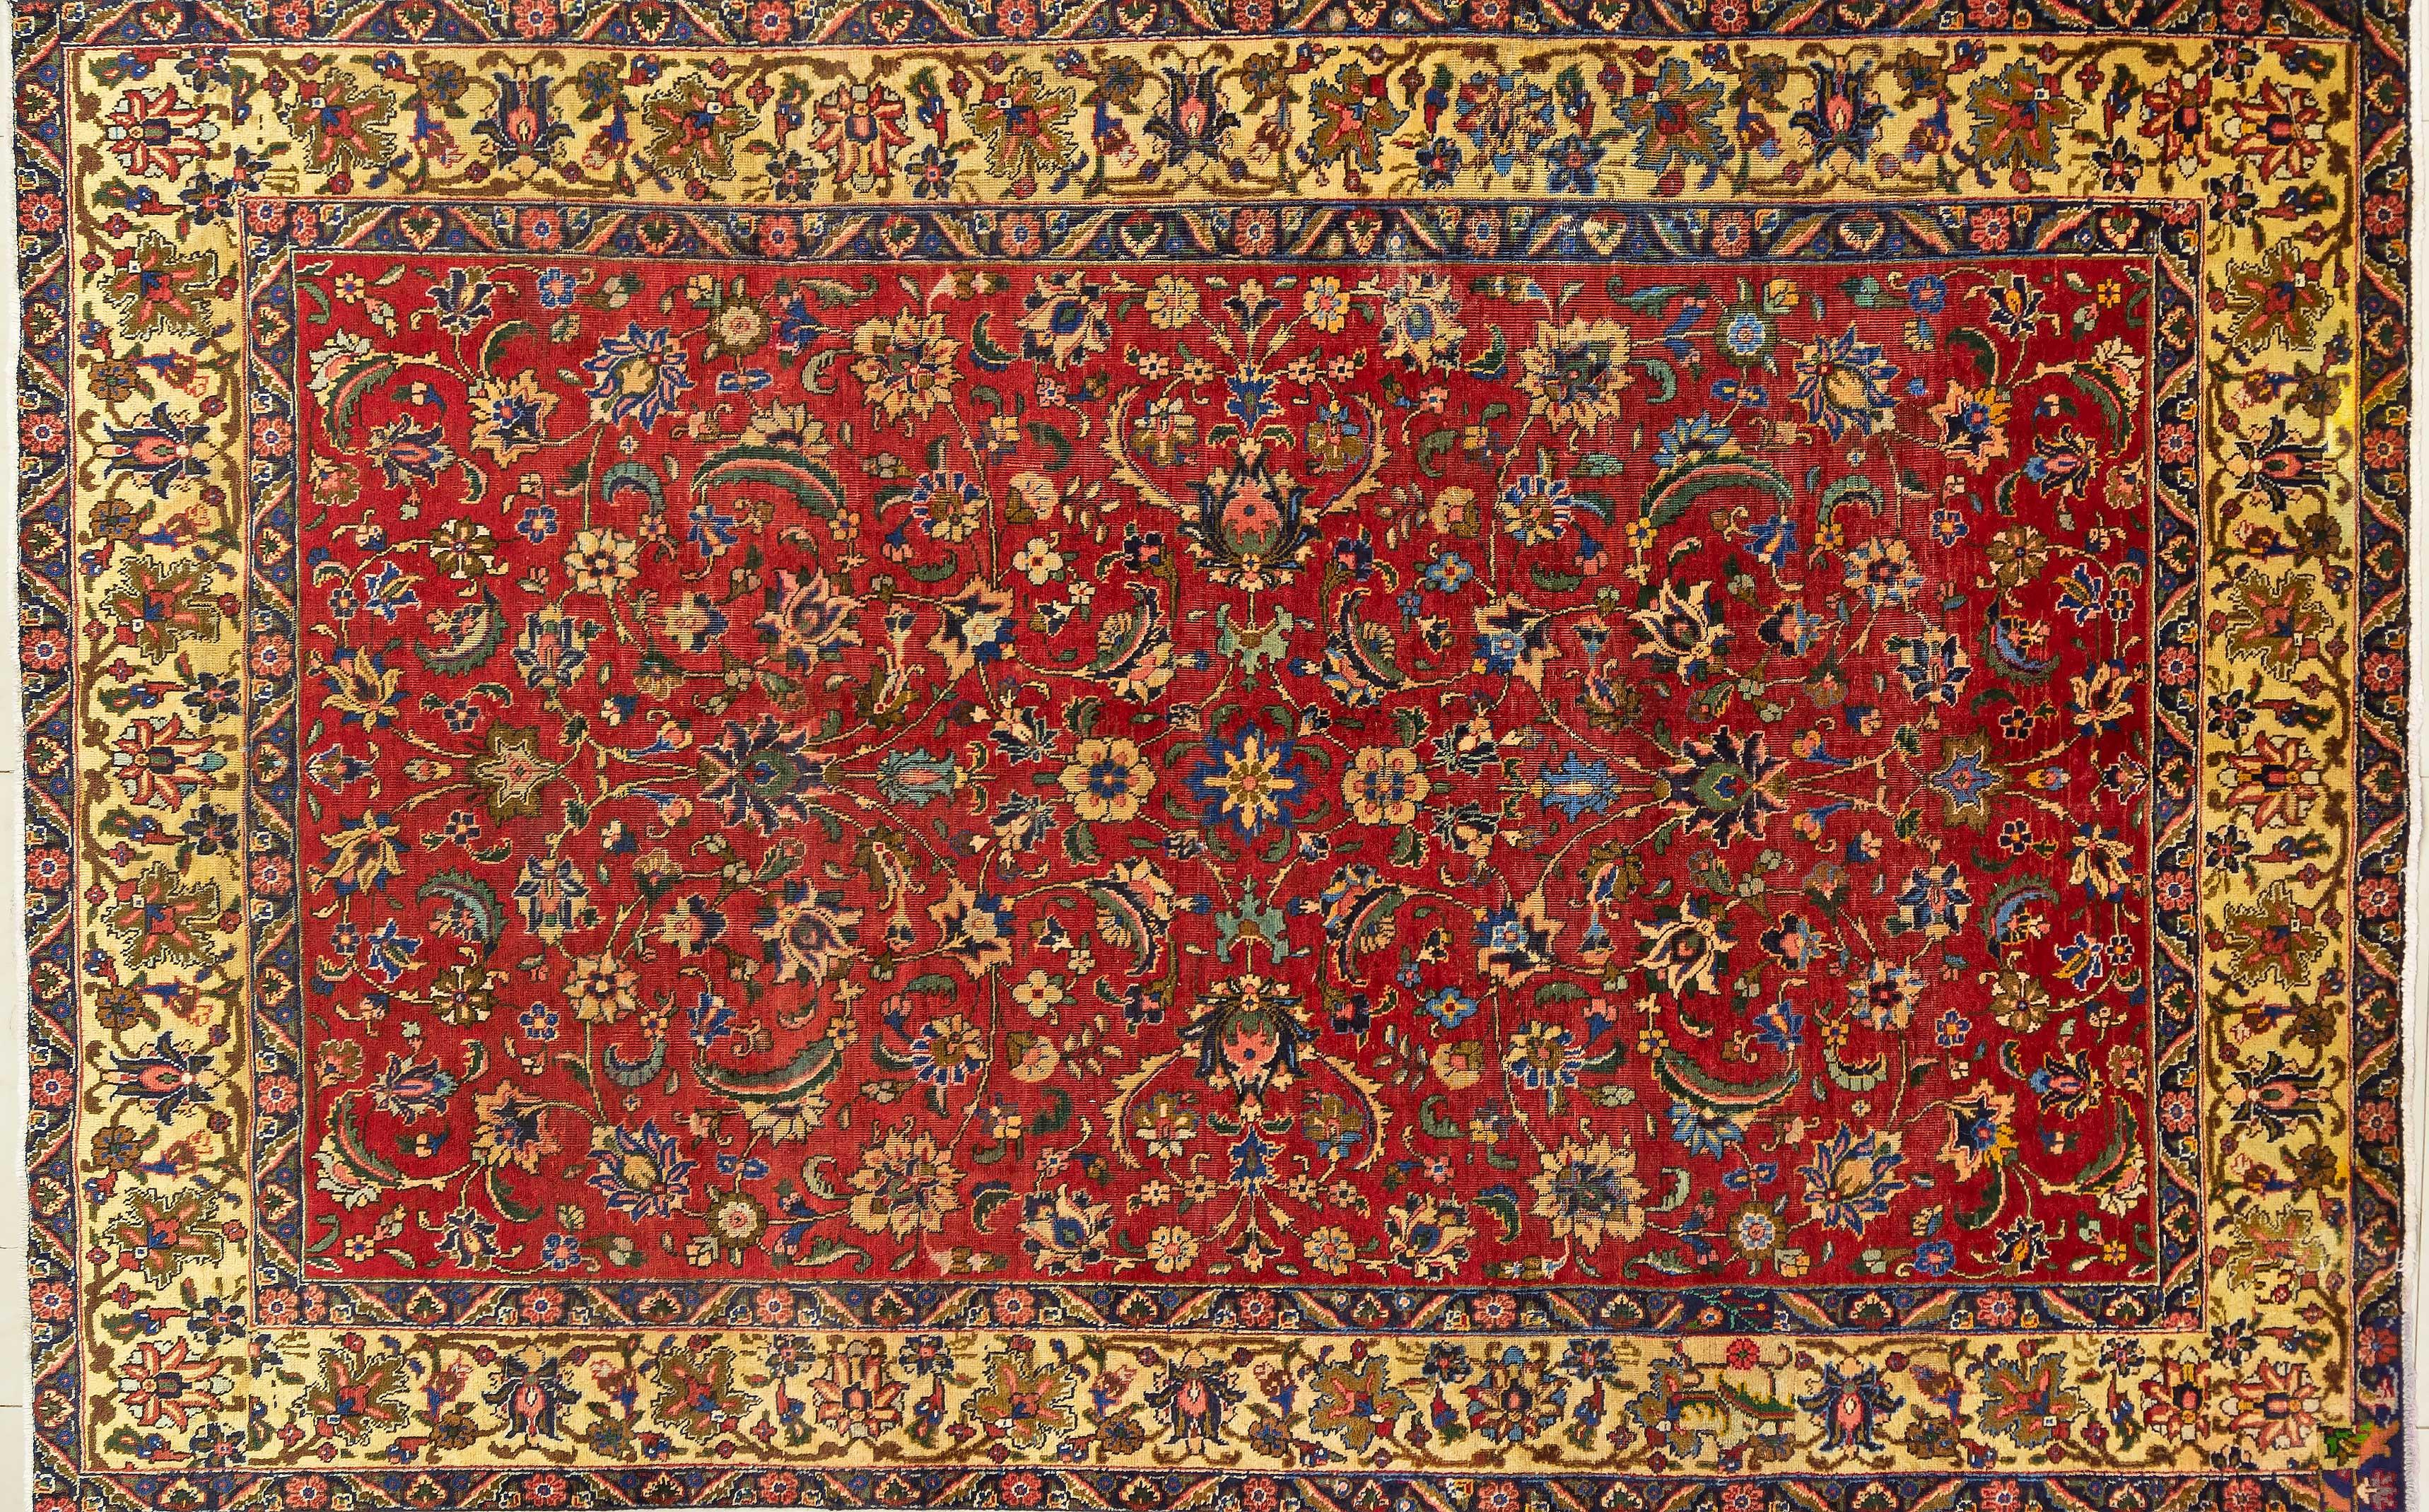 A Persian Hand Knotted Tabriz Carpet, 300 x 193